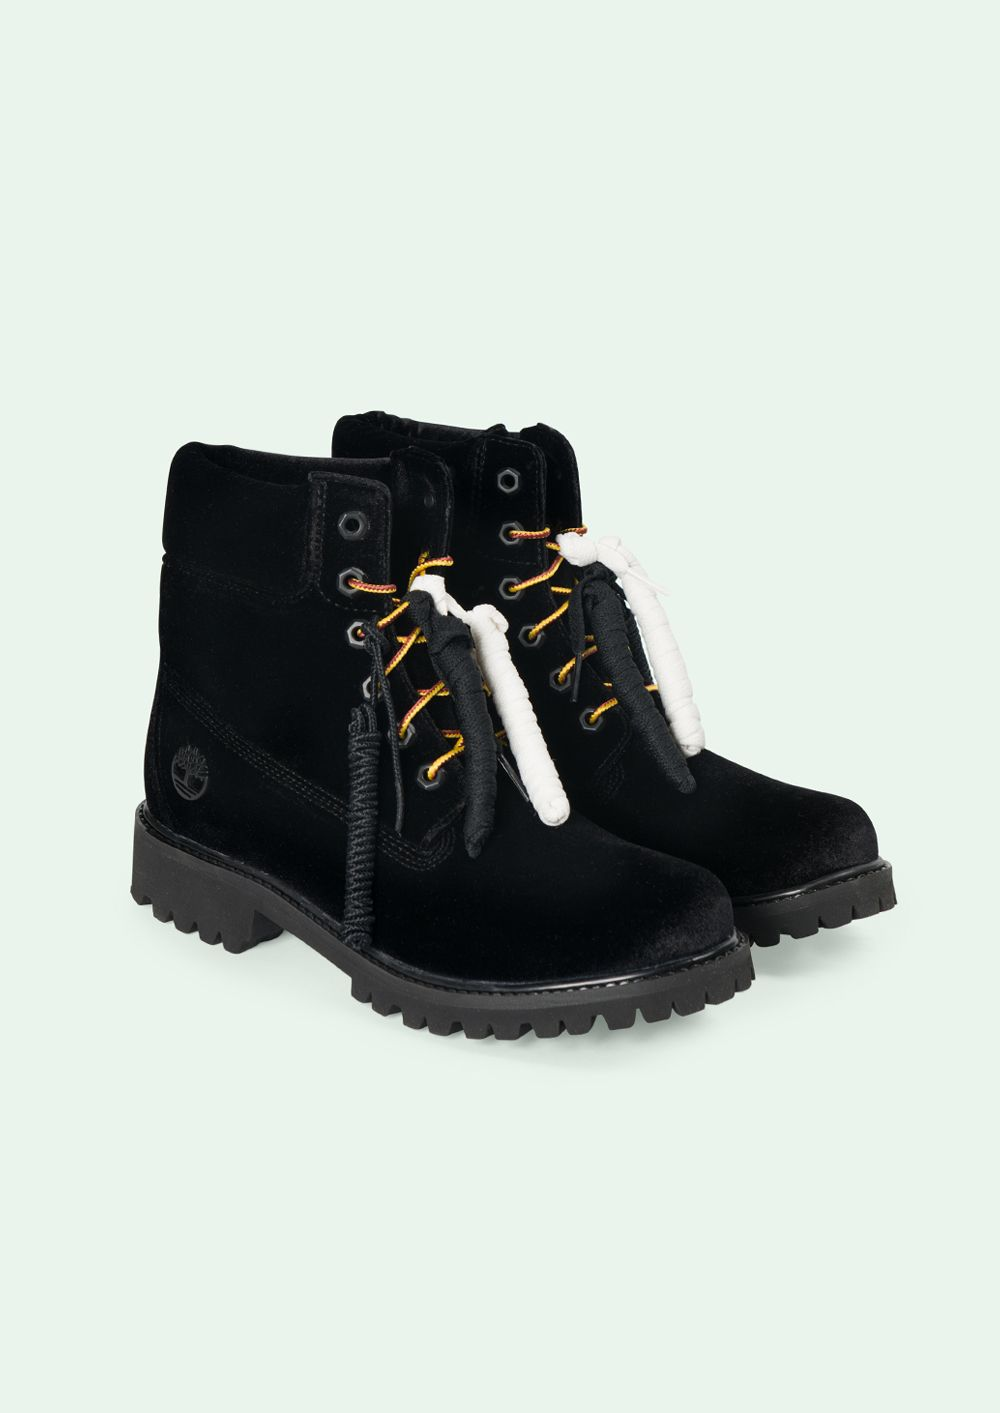 Timberland boots black, Off white shoes